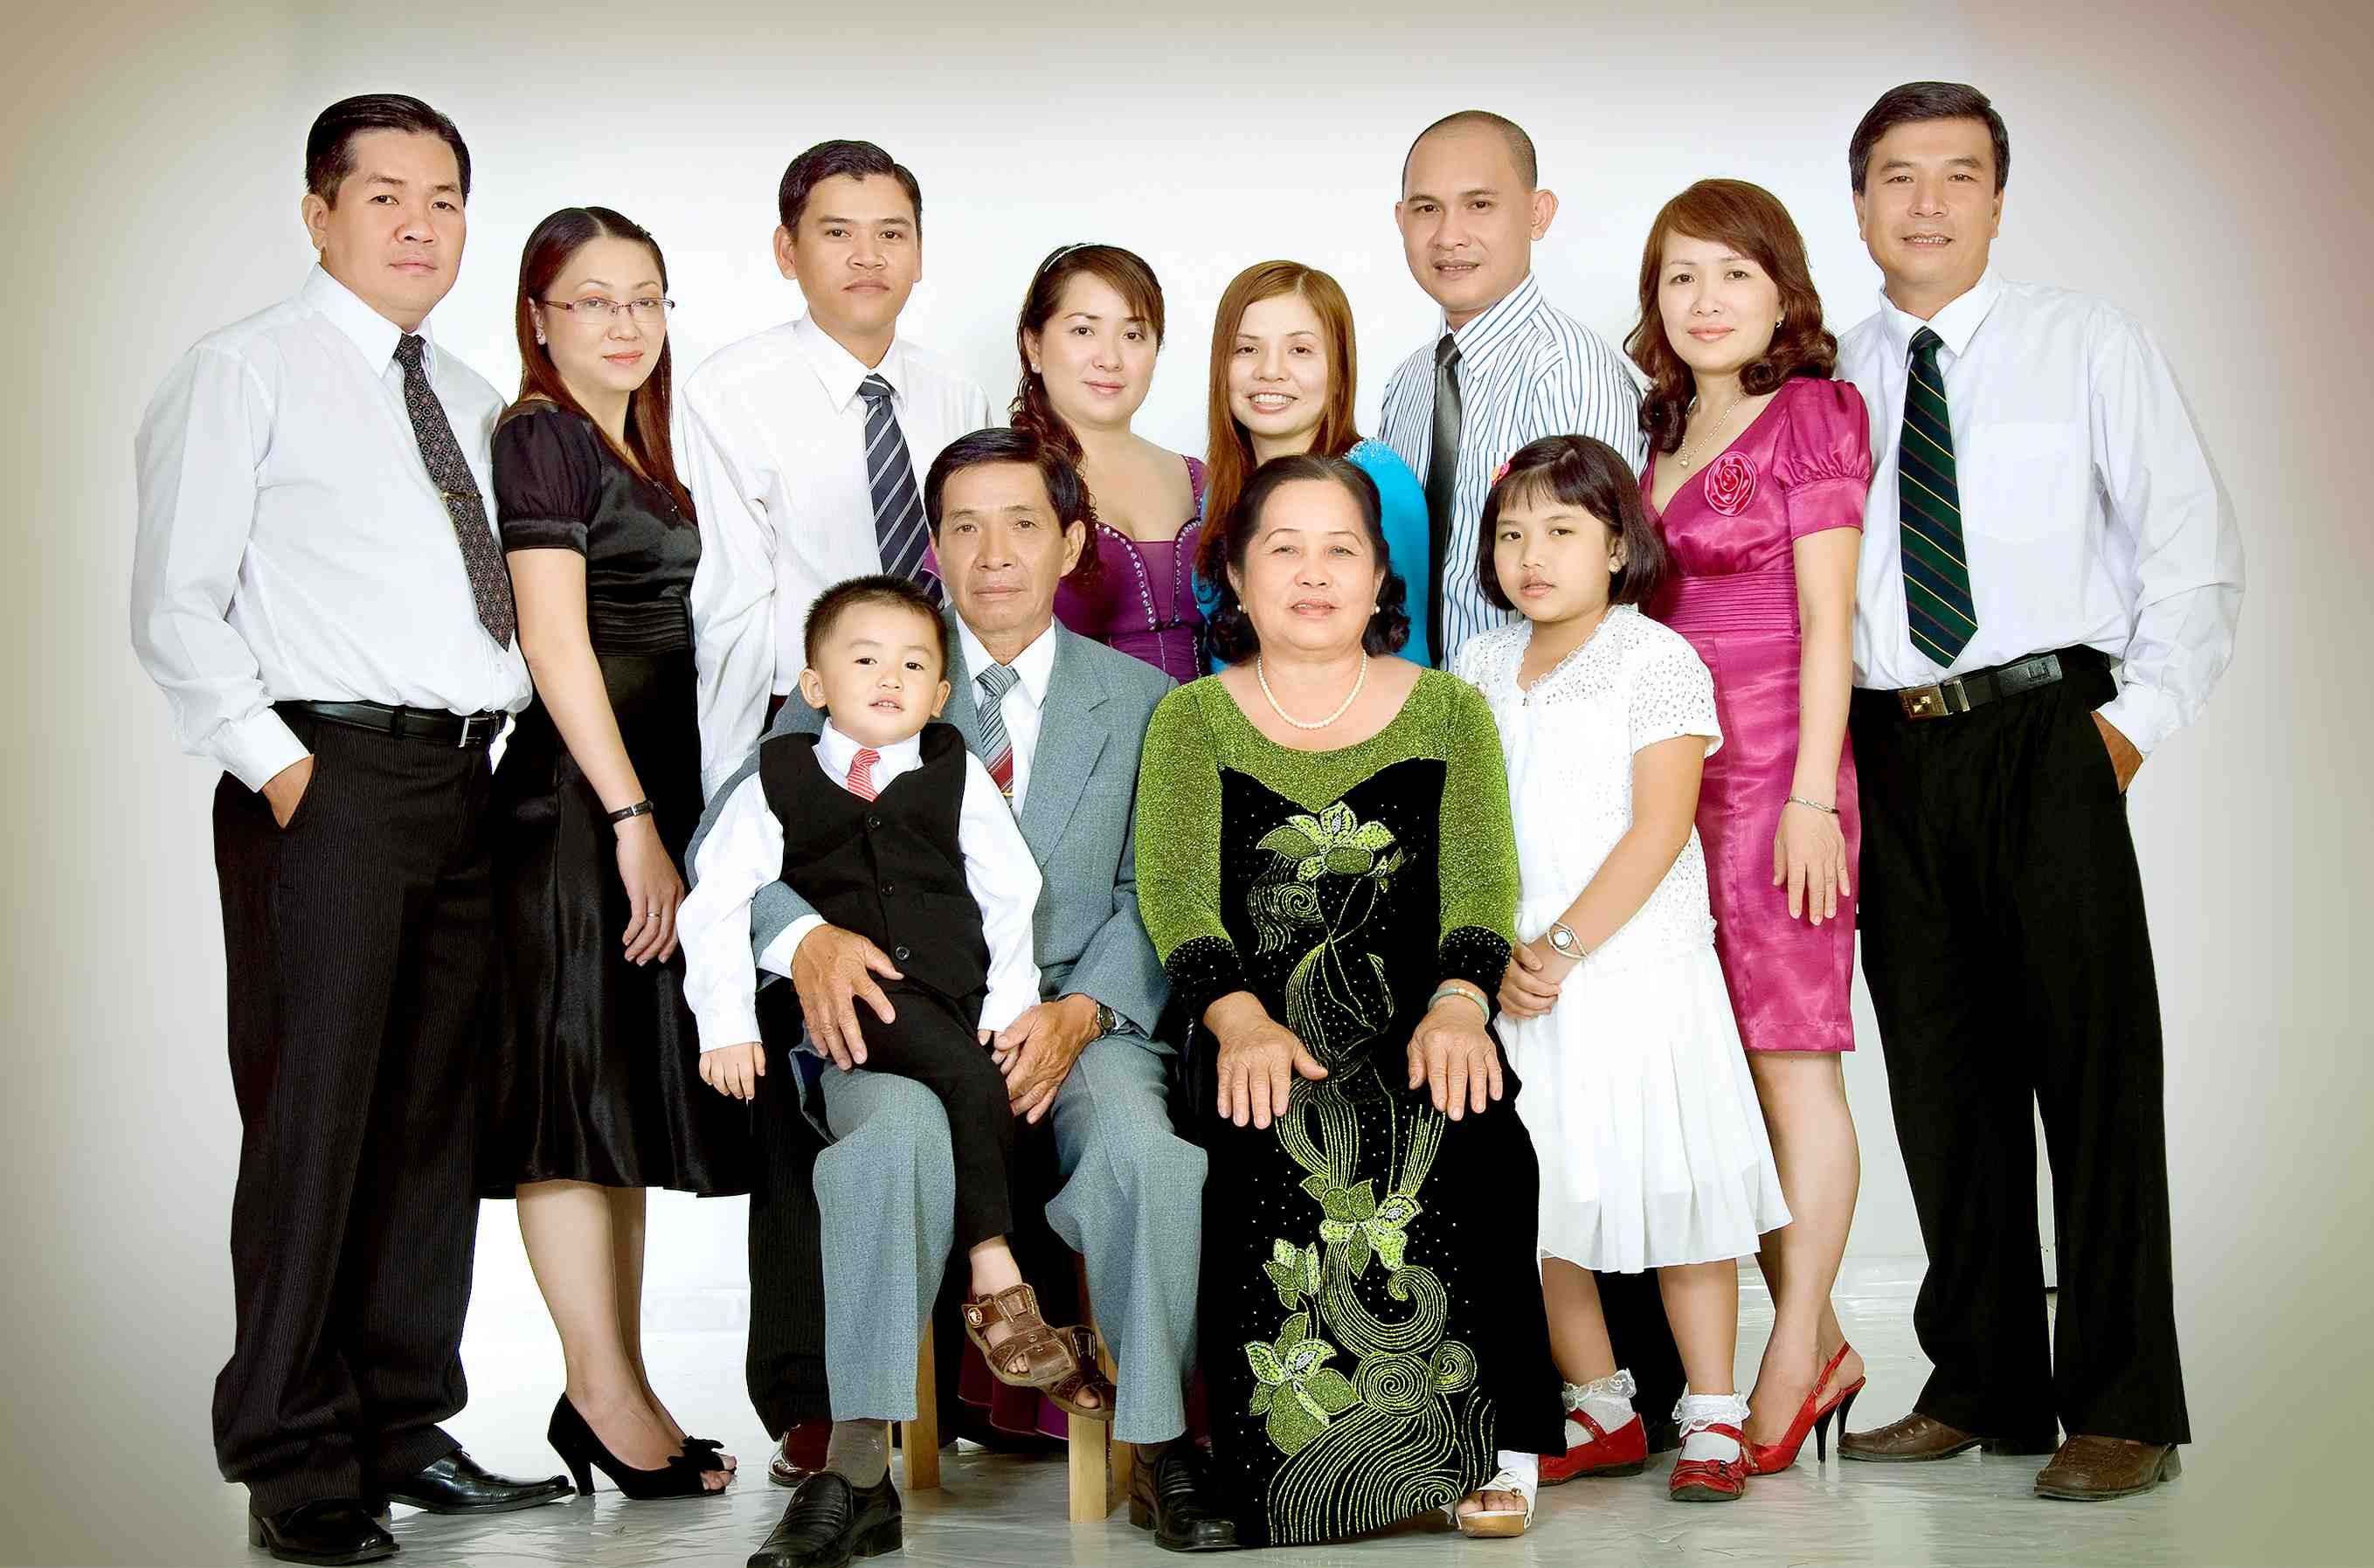 Vietnam Family Lineage